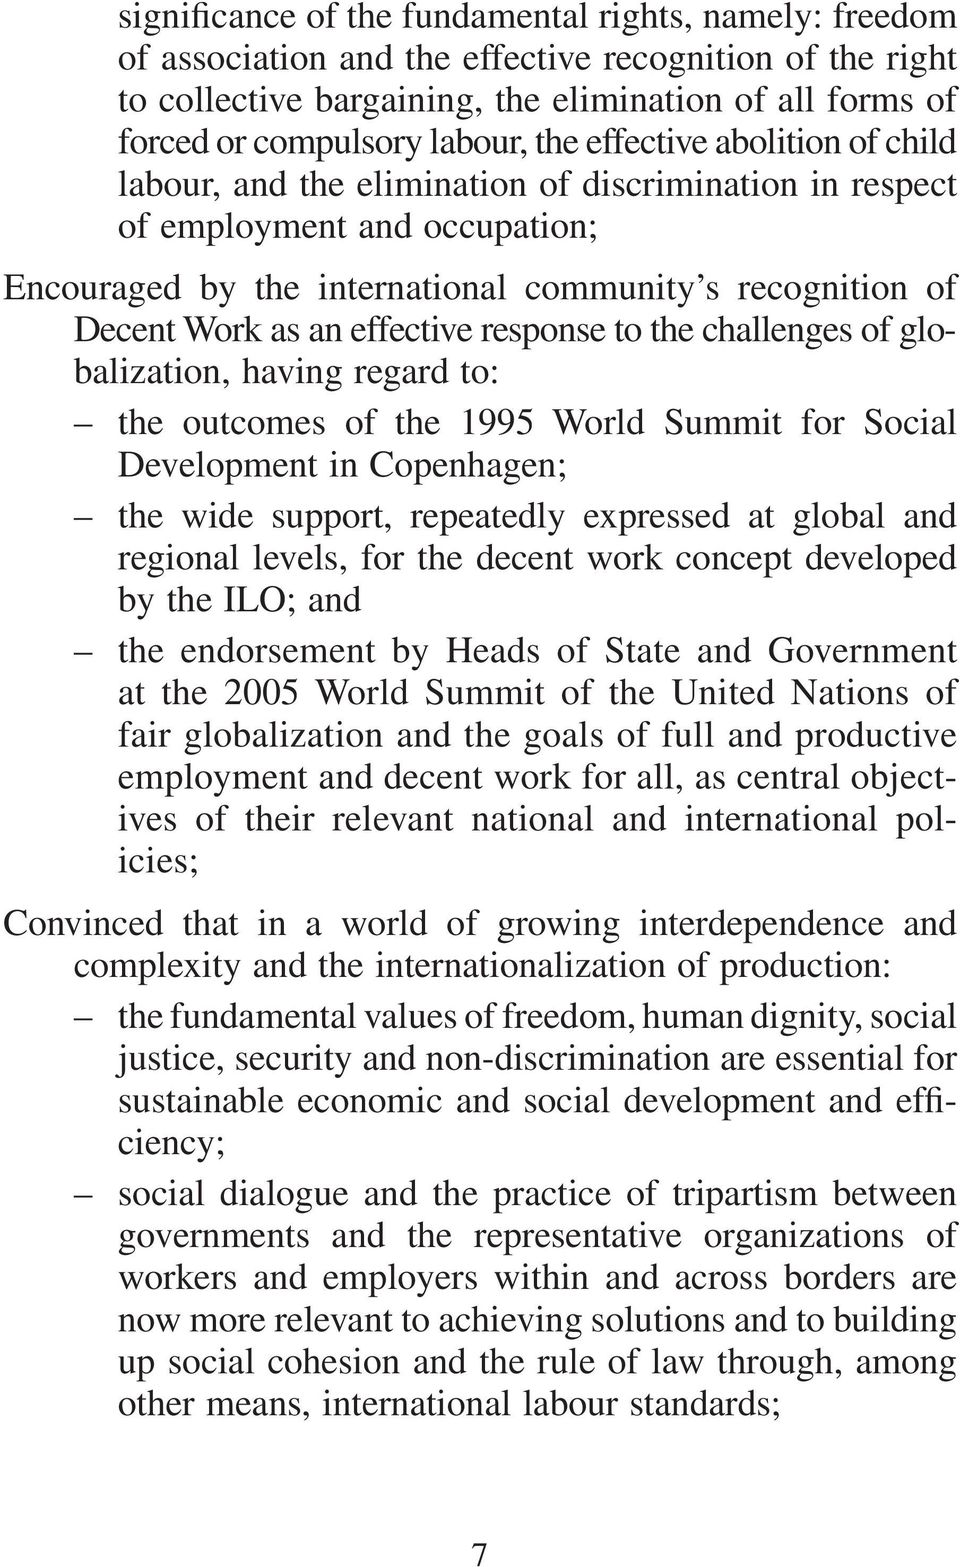 as an effective response to the challenges of globalization, having regard to: the outcomes of the 1995 World Summit for Social Development in Copenhagen; the wide support, repeatedly expressed at